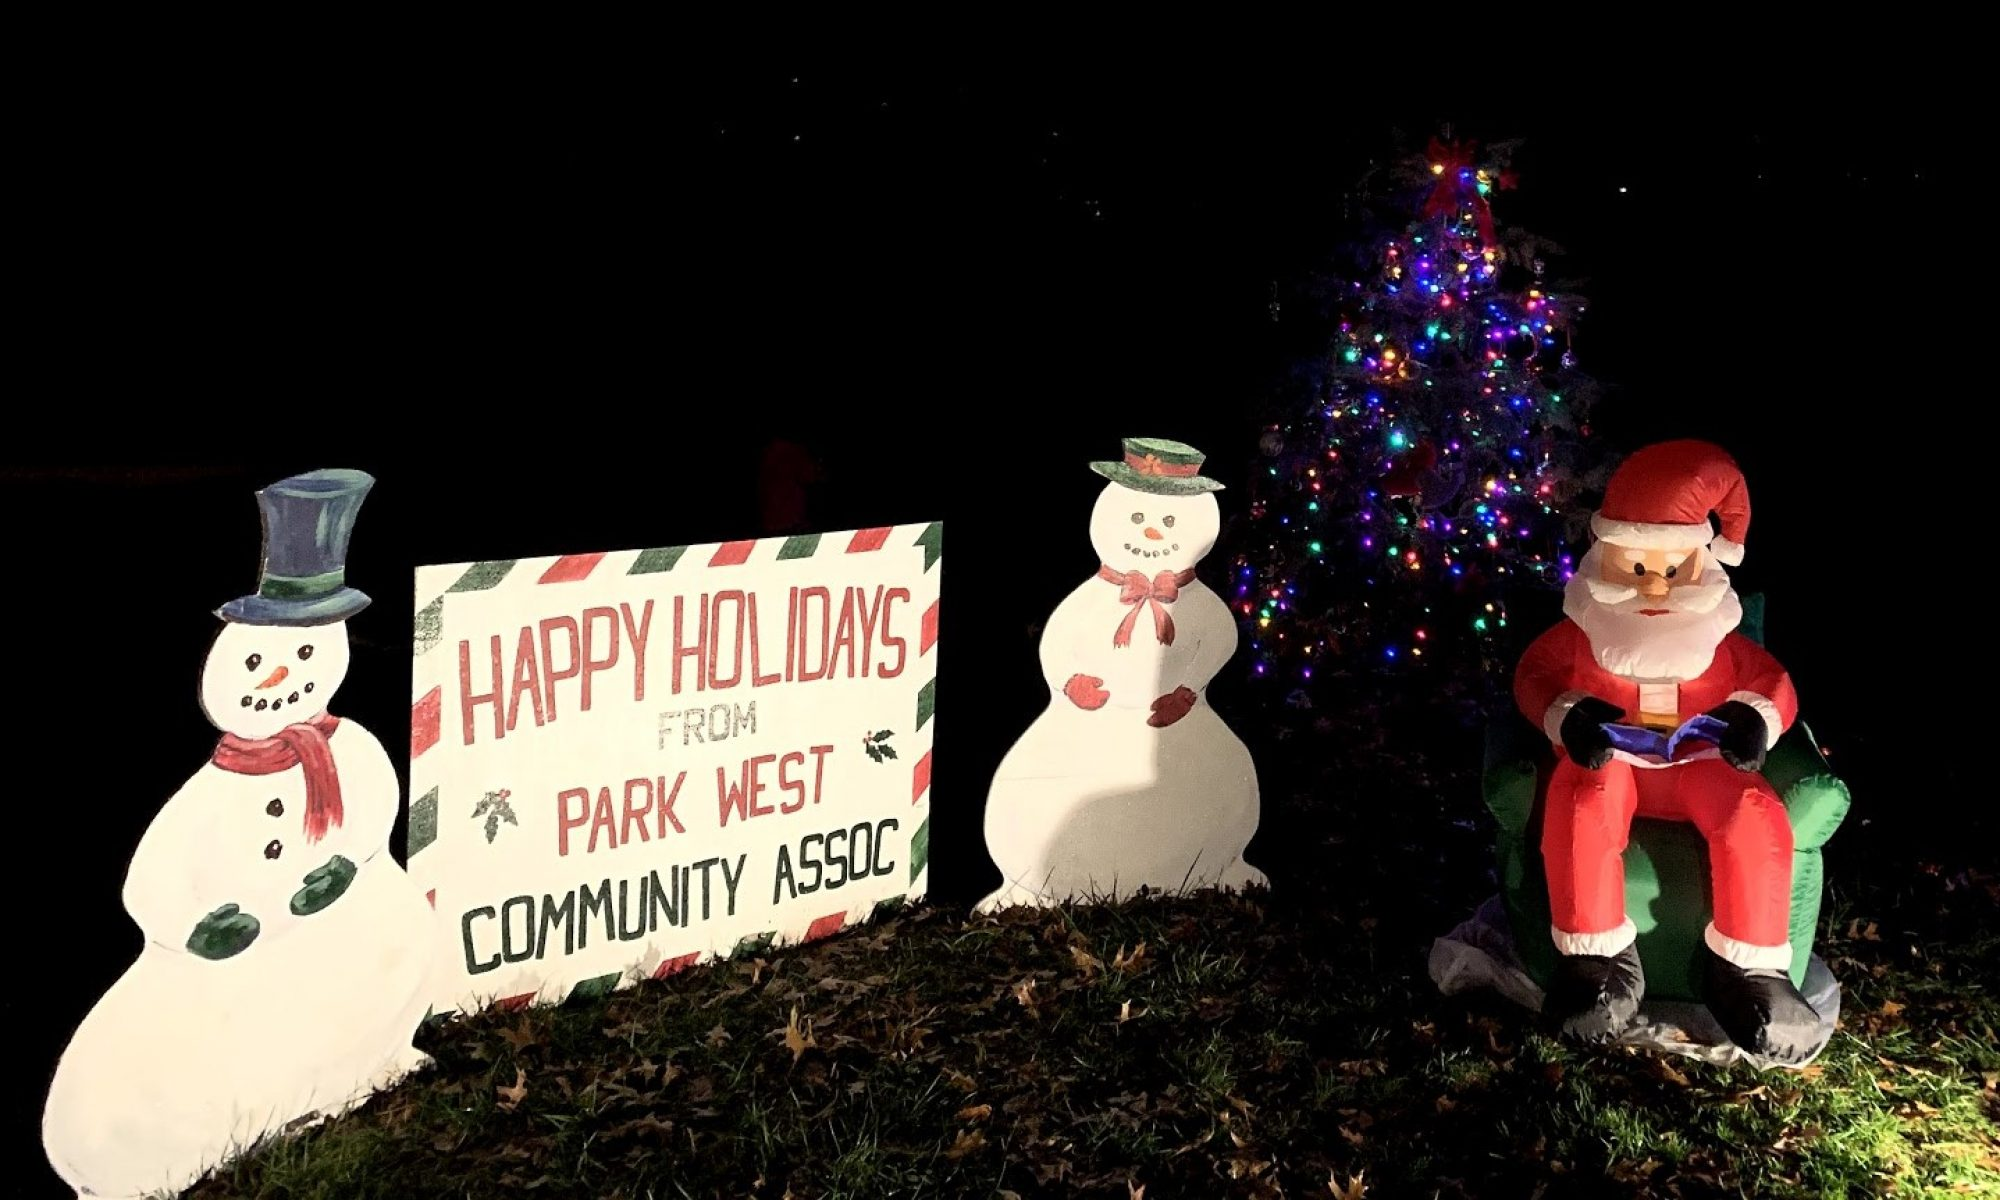 Park West Community Association